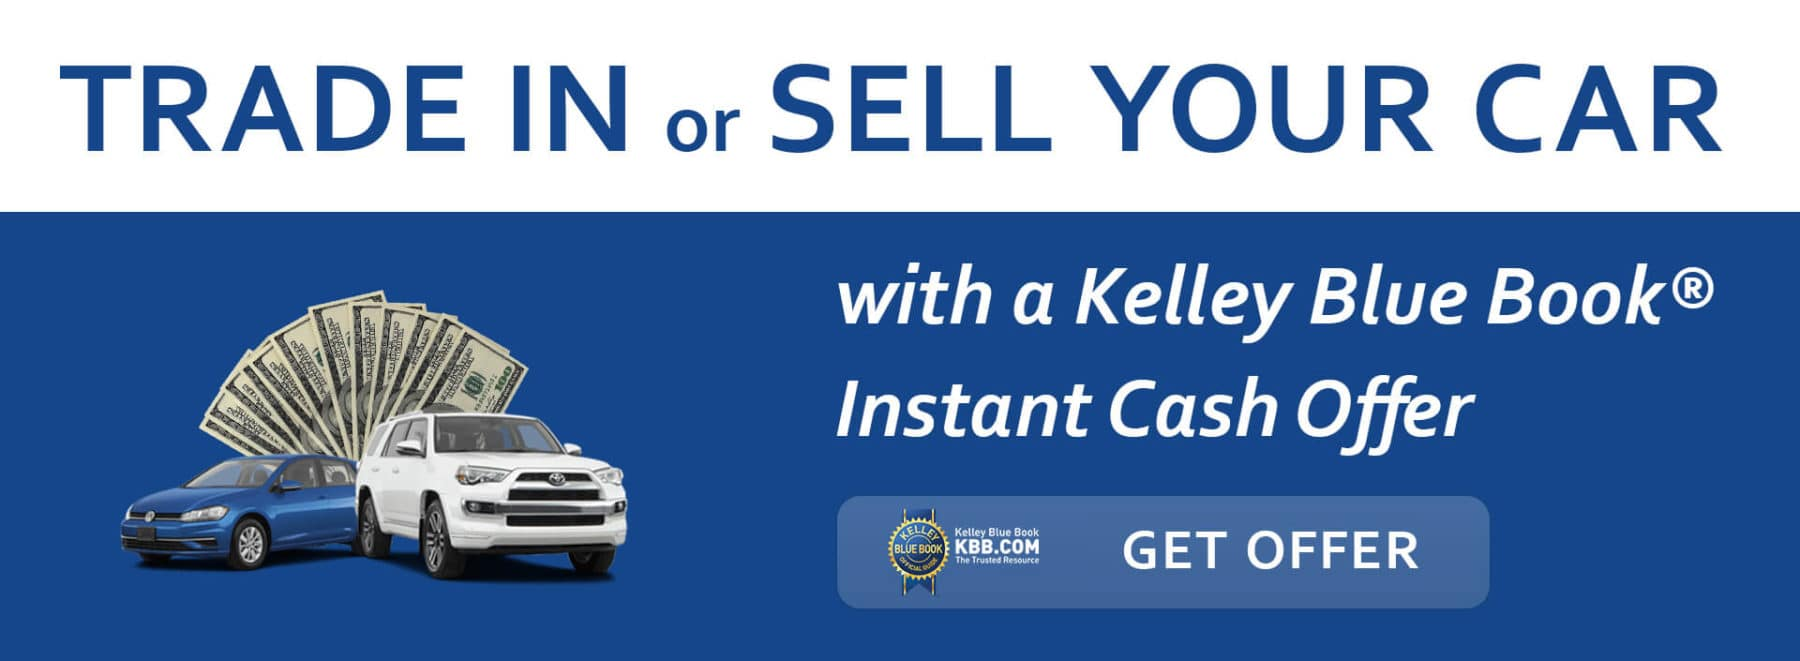 Trade in or sell with a Kelly Blue Book Instant Cash Offer!